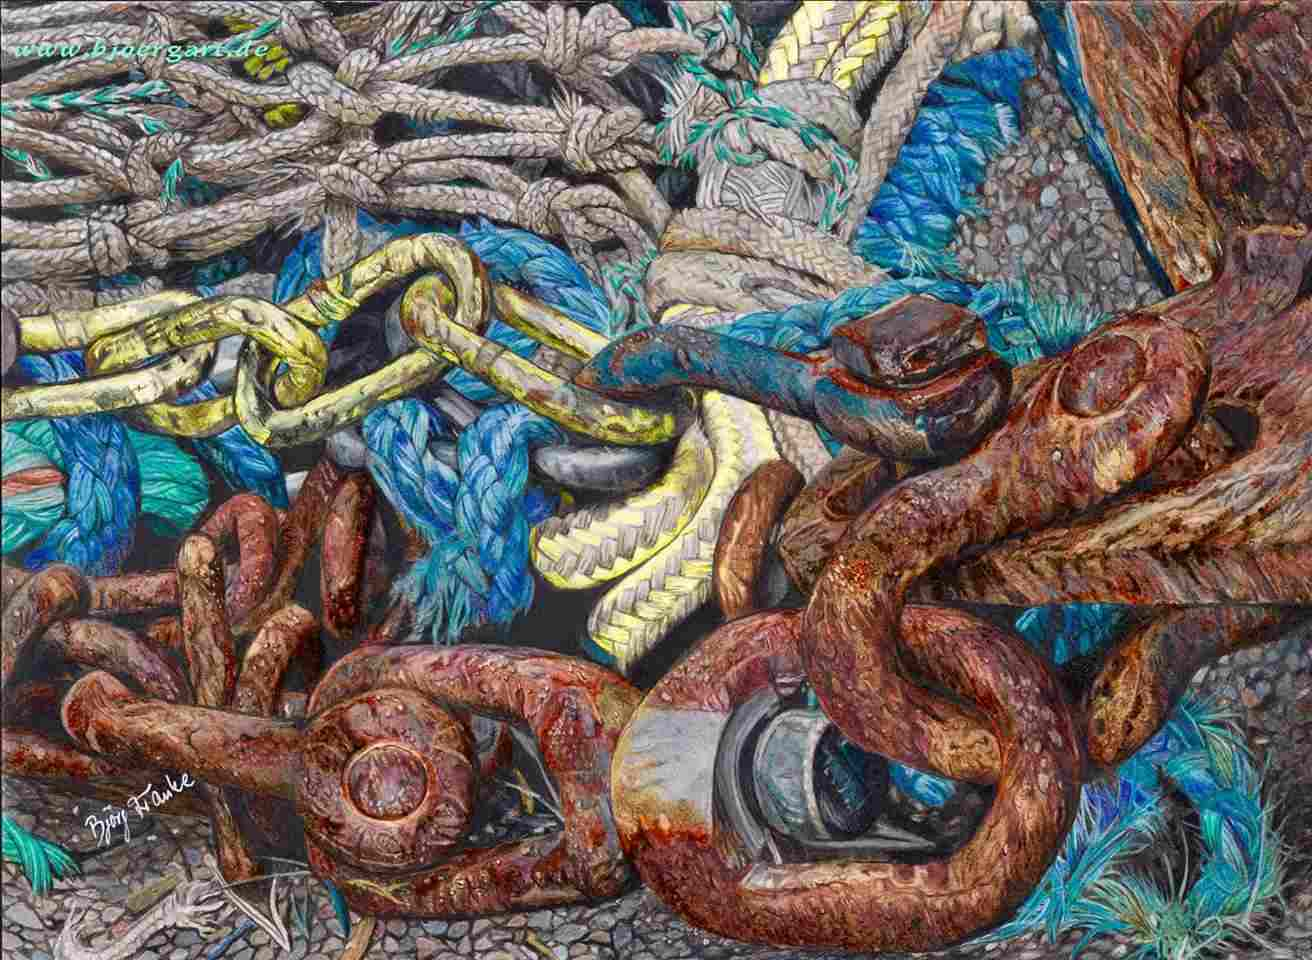 Title: »Anchor chains and fisher's yarn«